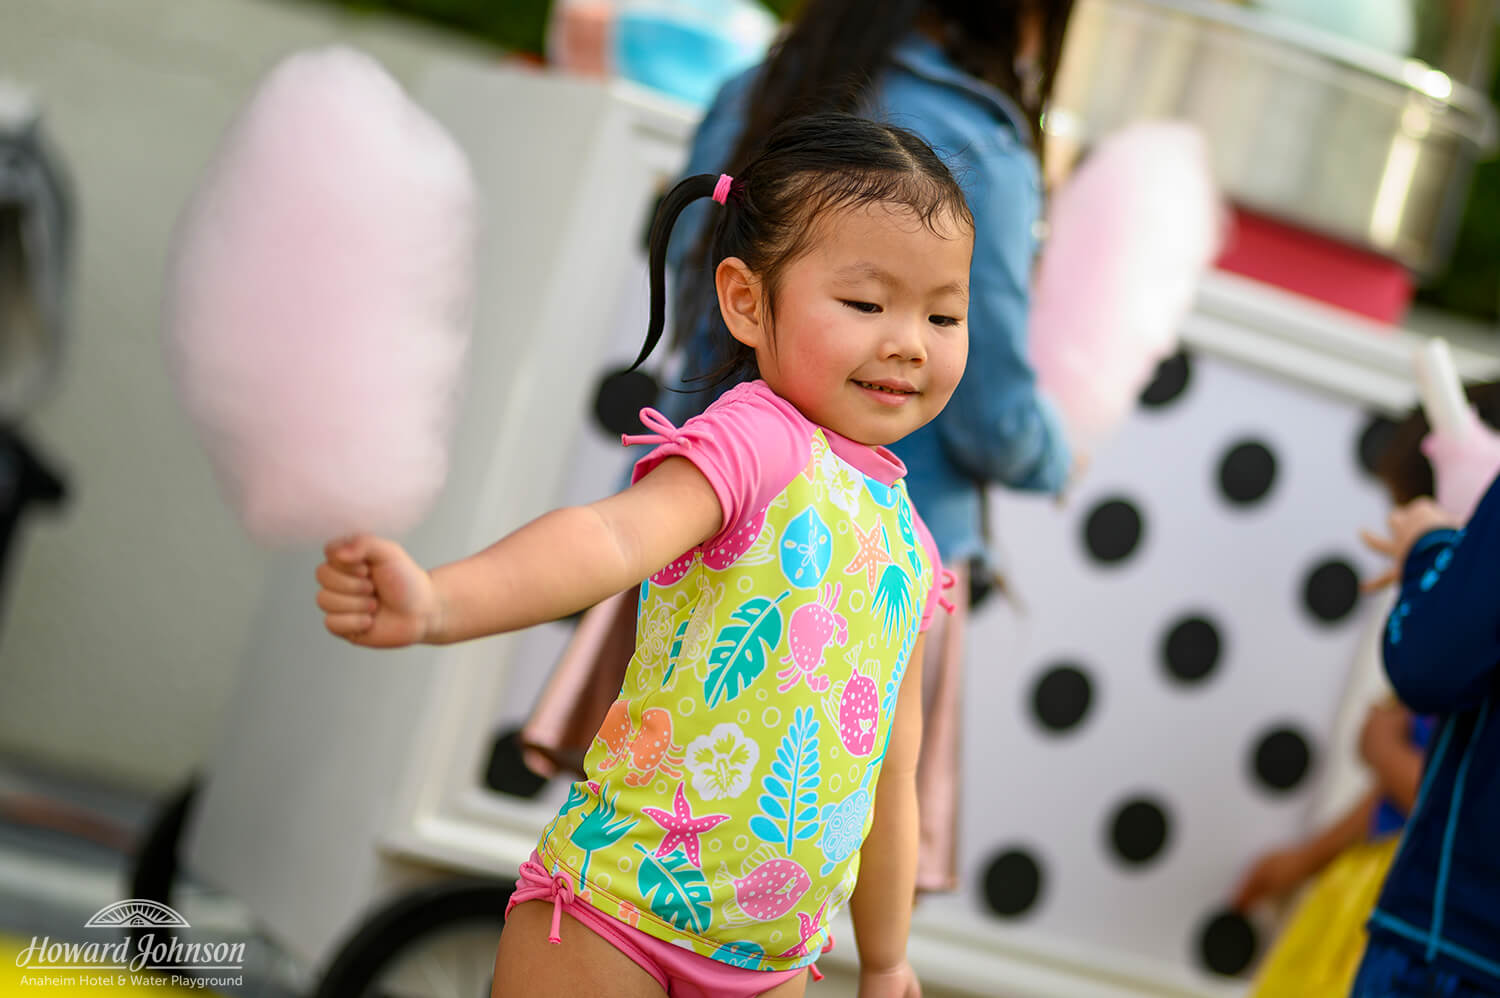 a little girl wearing a swimsuit holds pink cotton candy in her hand